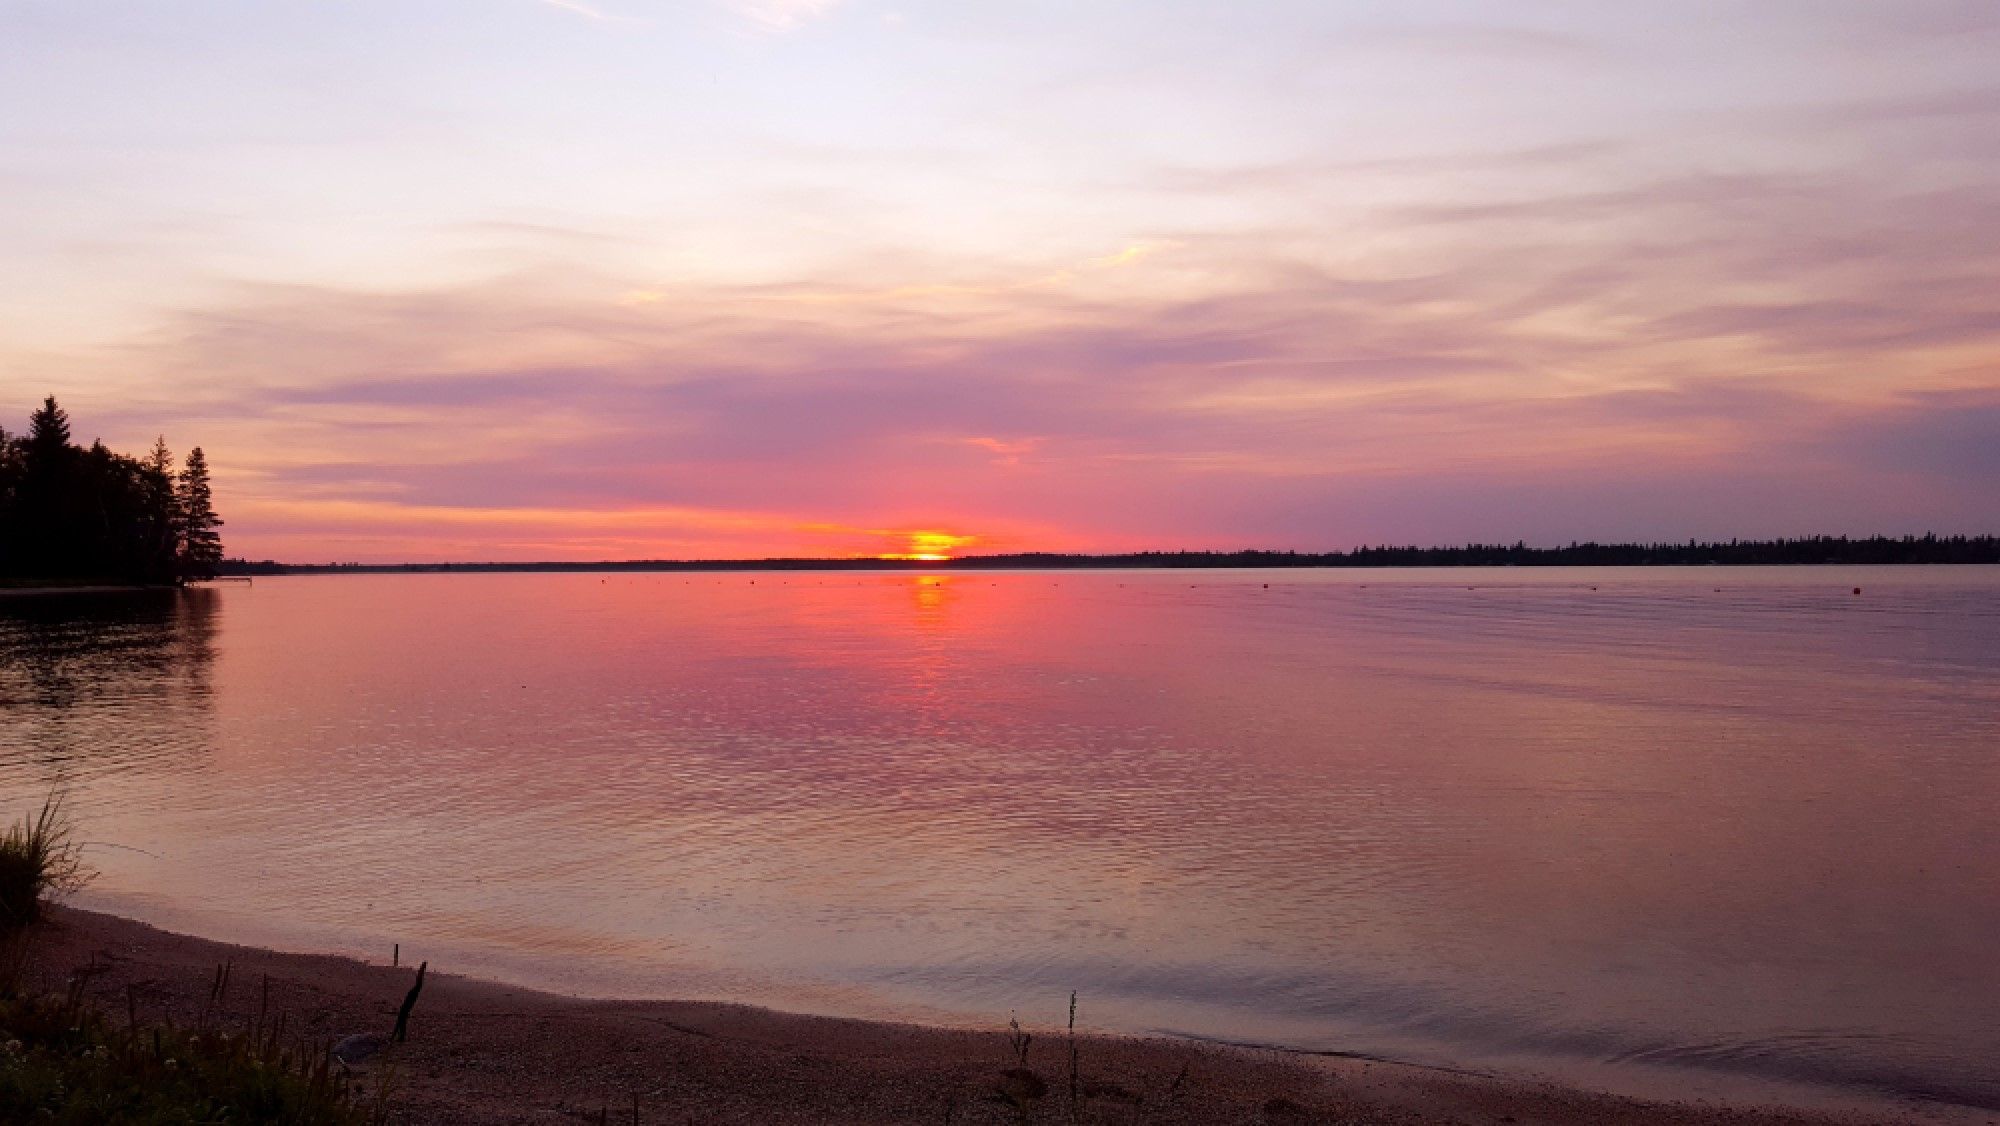 sunset over a lake, red sun, clouds are purple